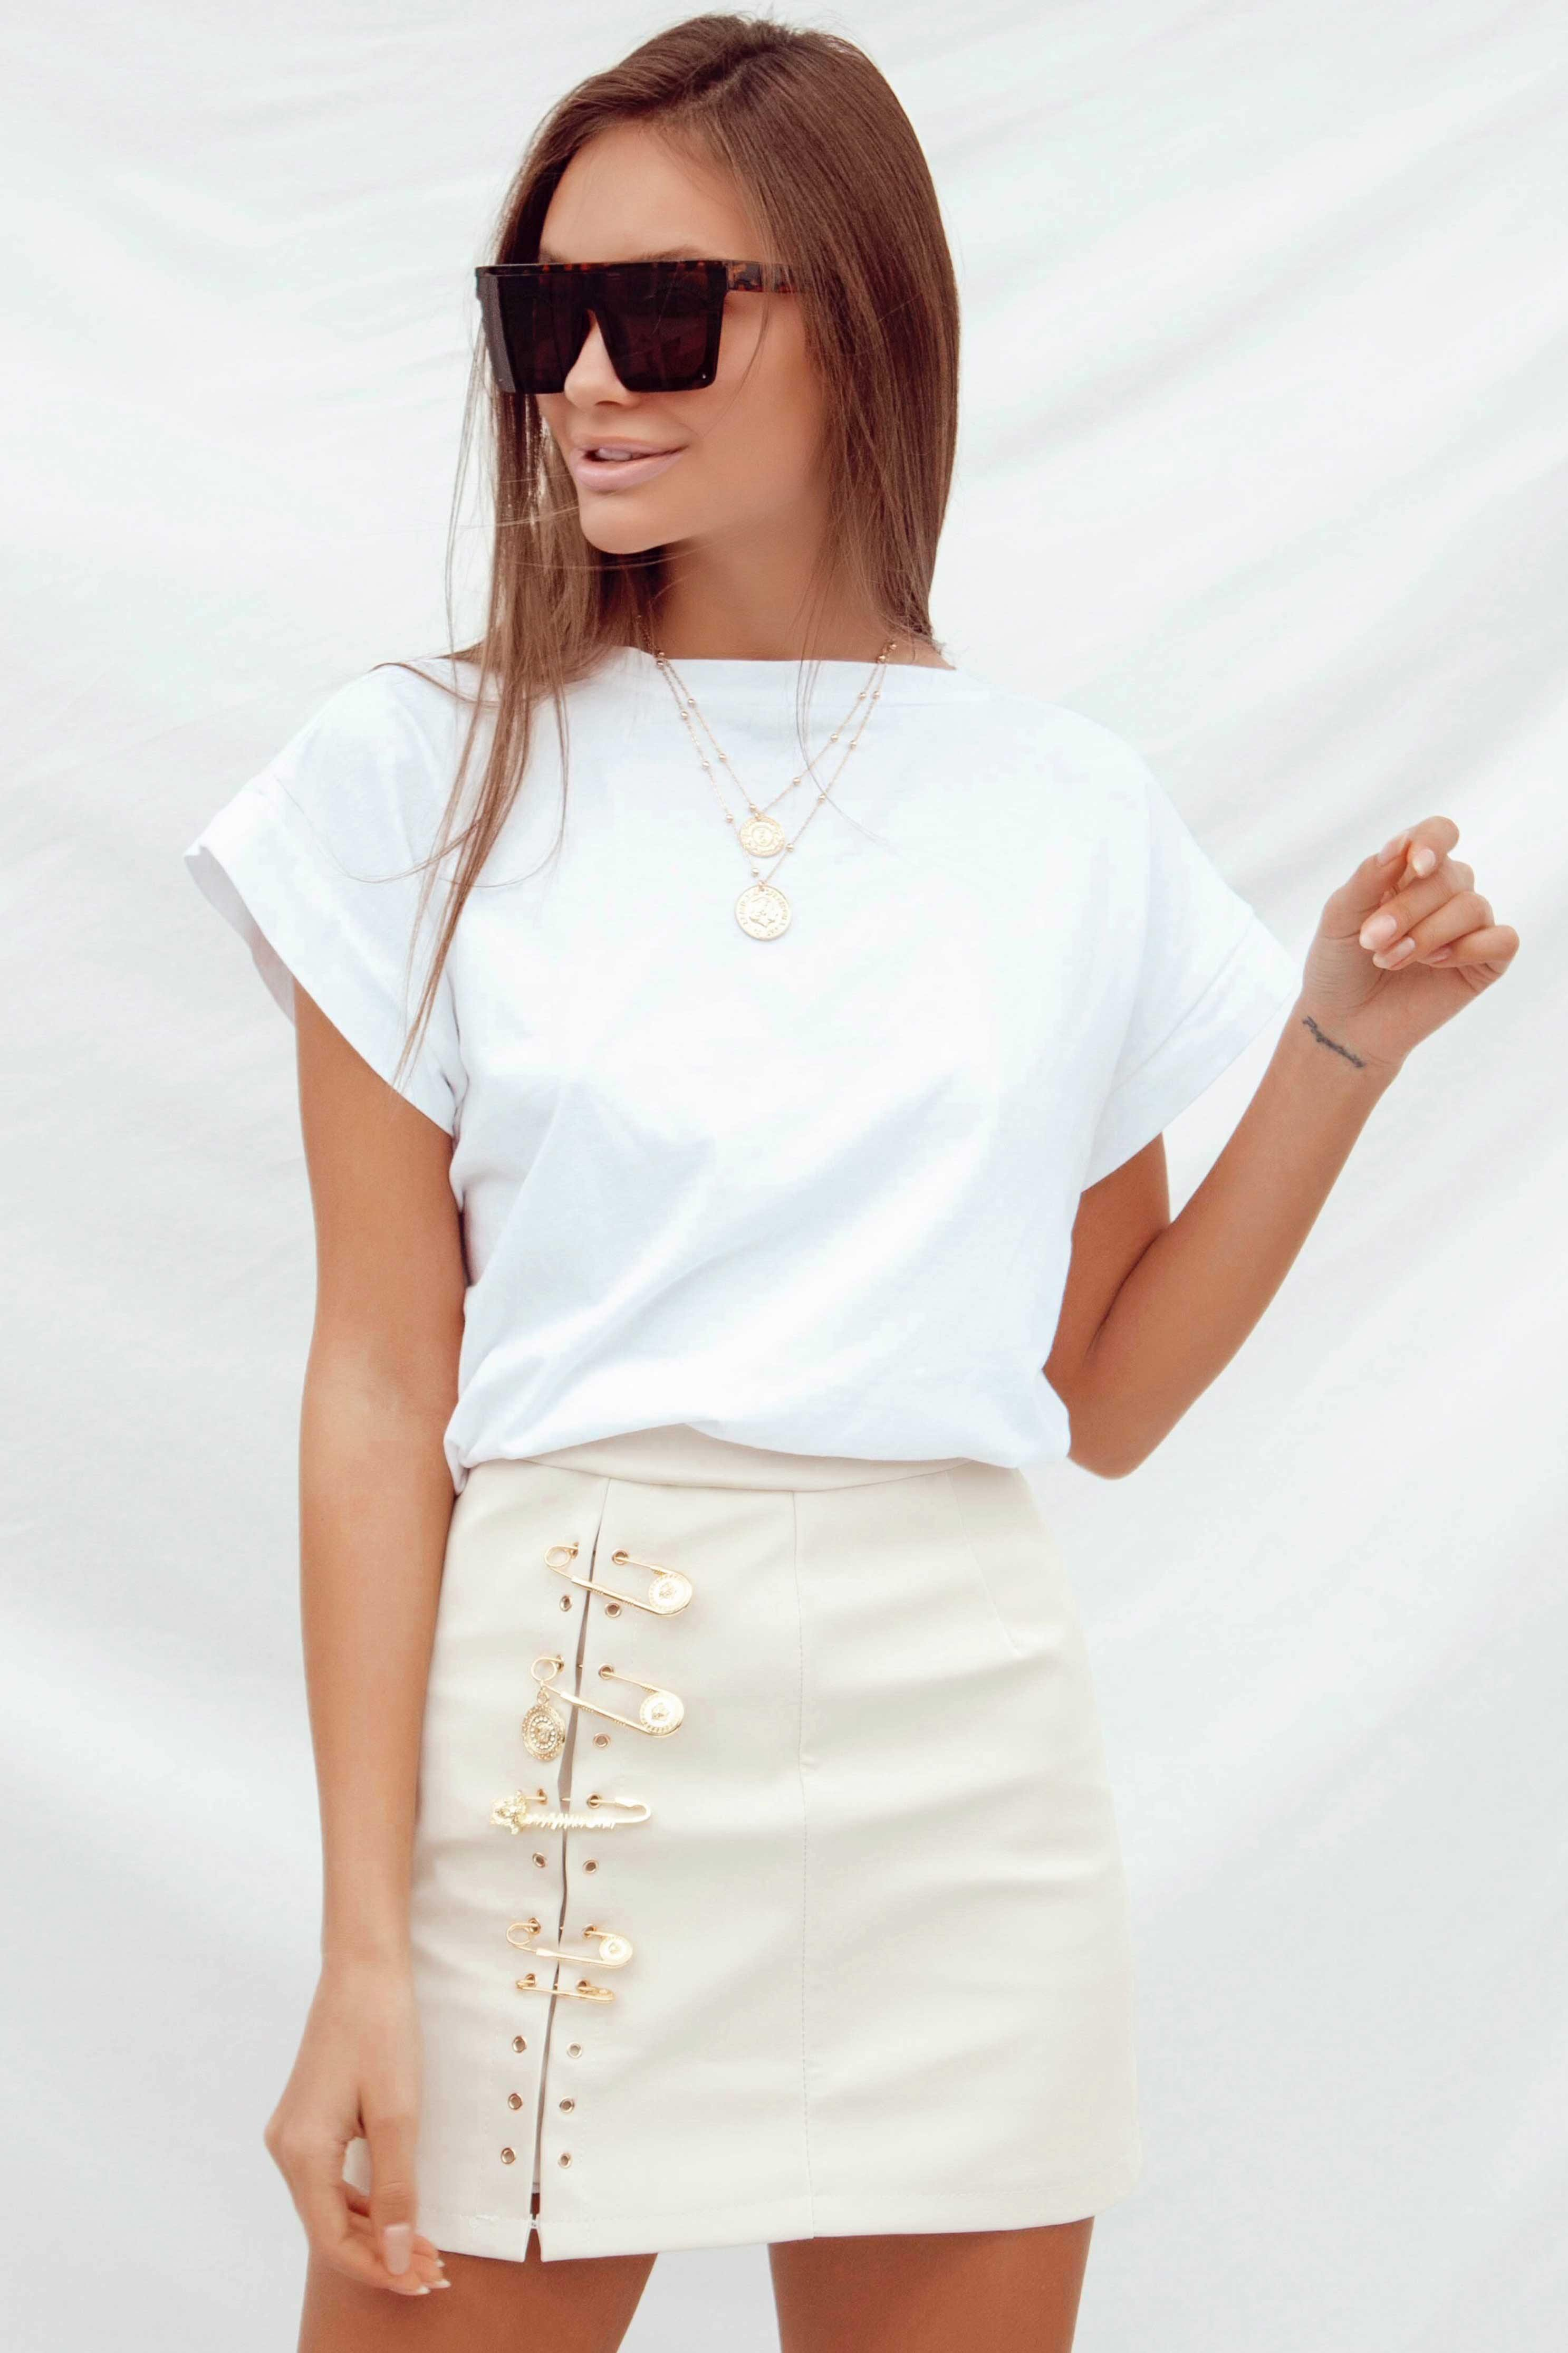 KARLA SKIRT IN BEIGE | Women's Online Shopping | CHICLEFRIQUE  (4393940090969)